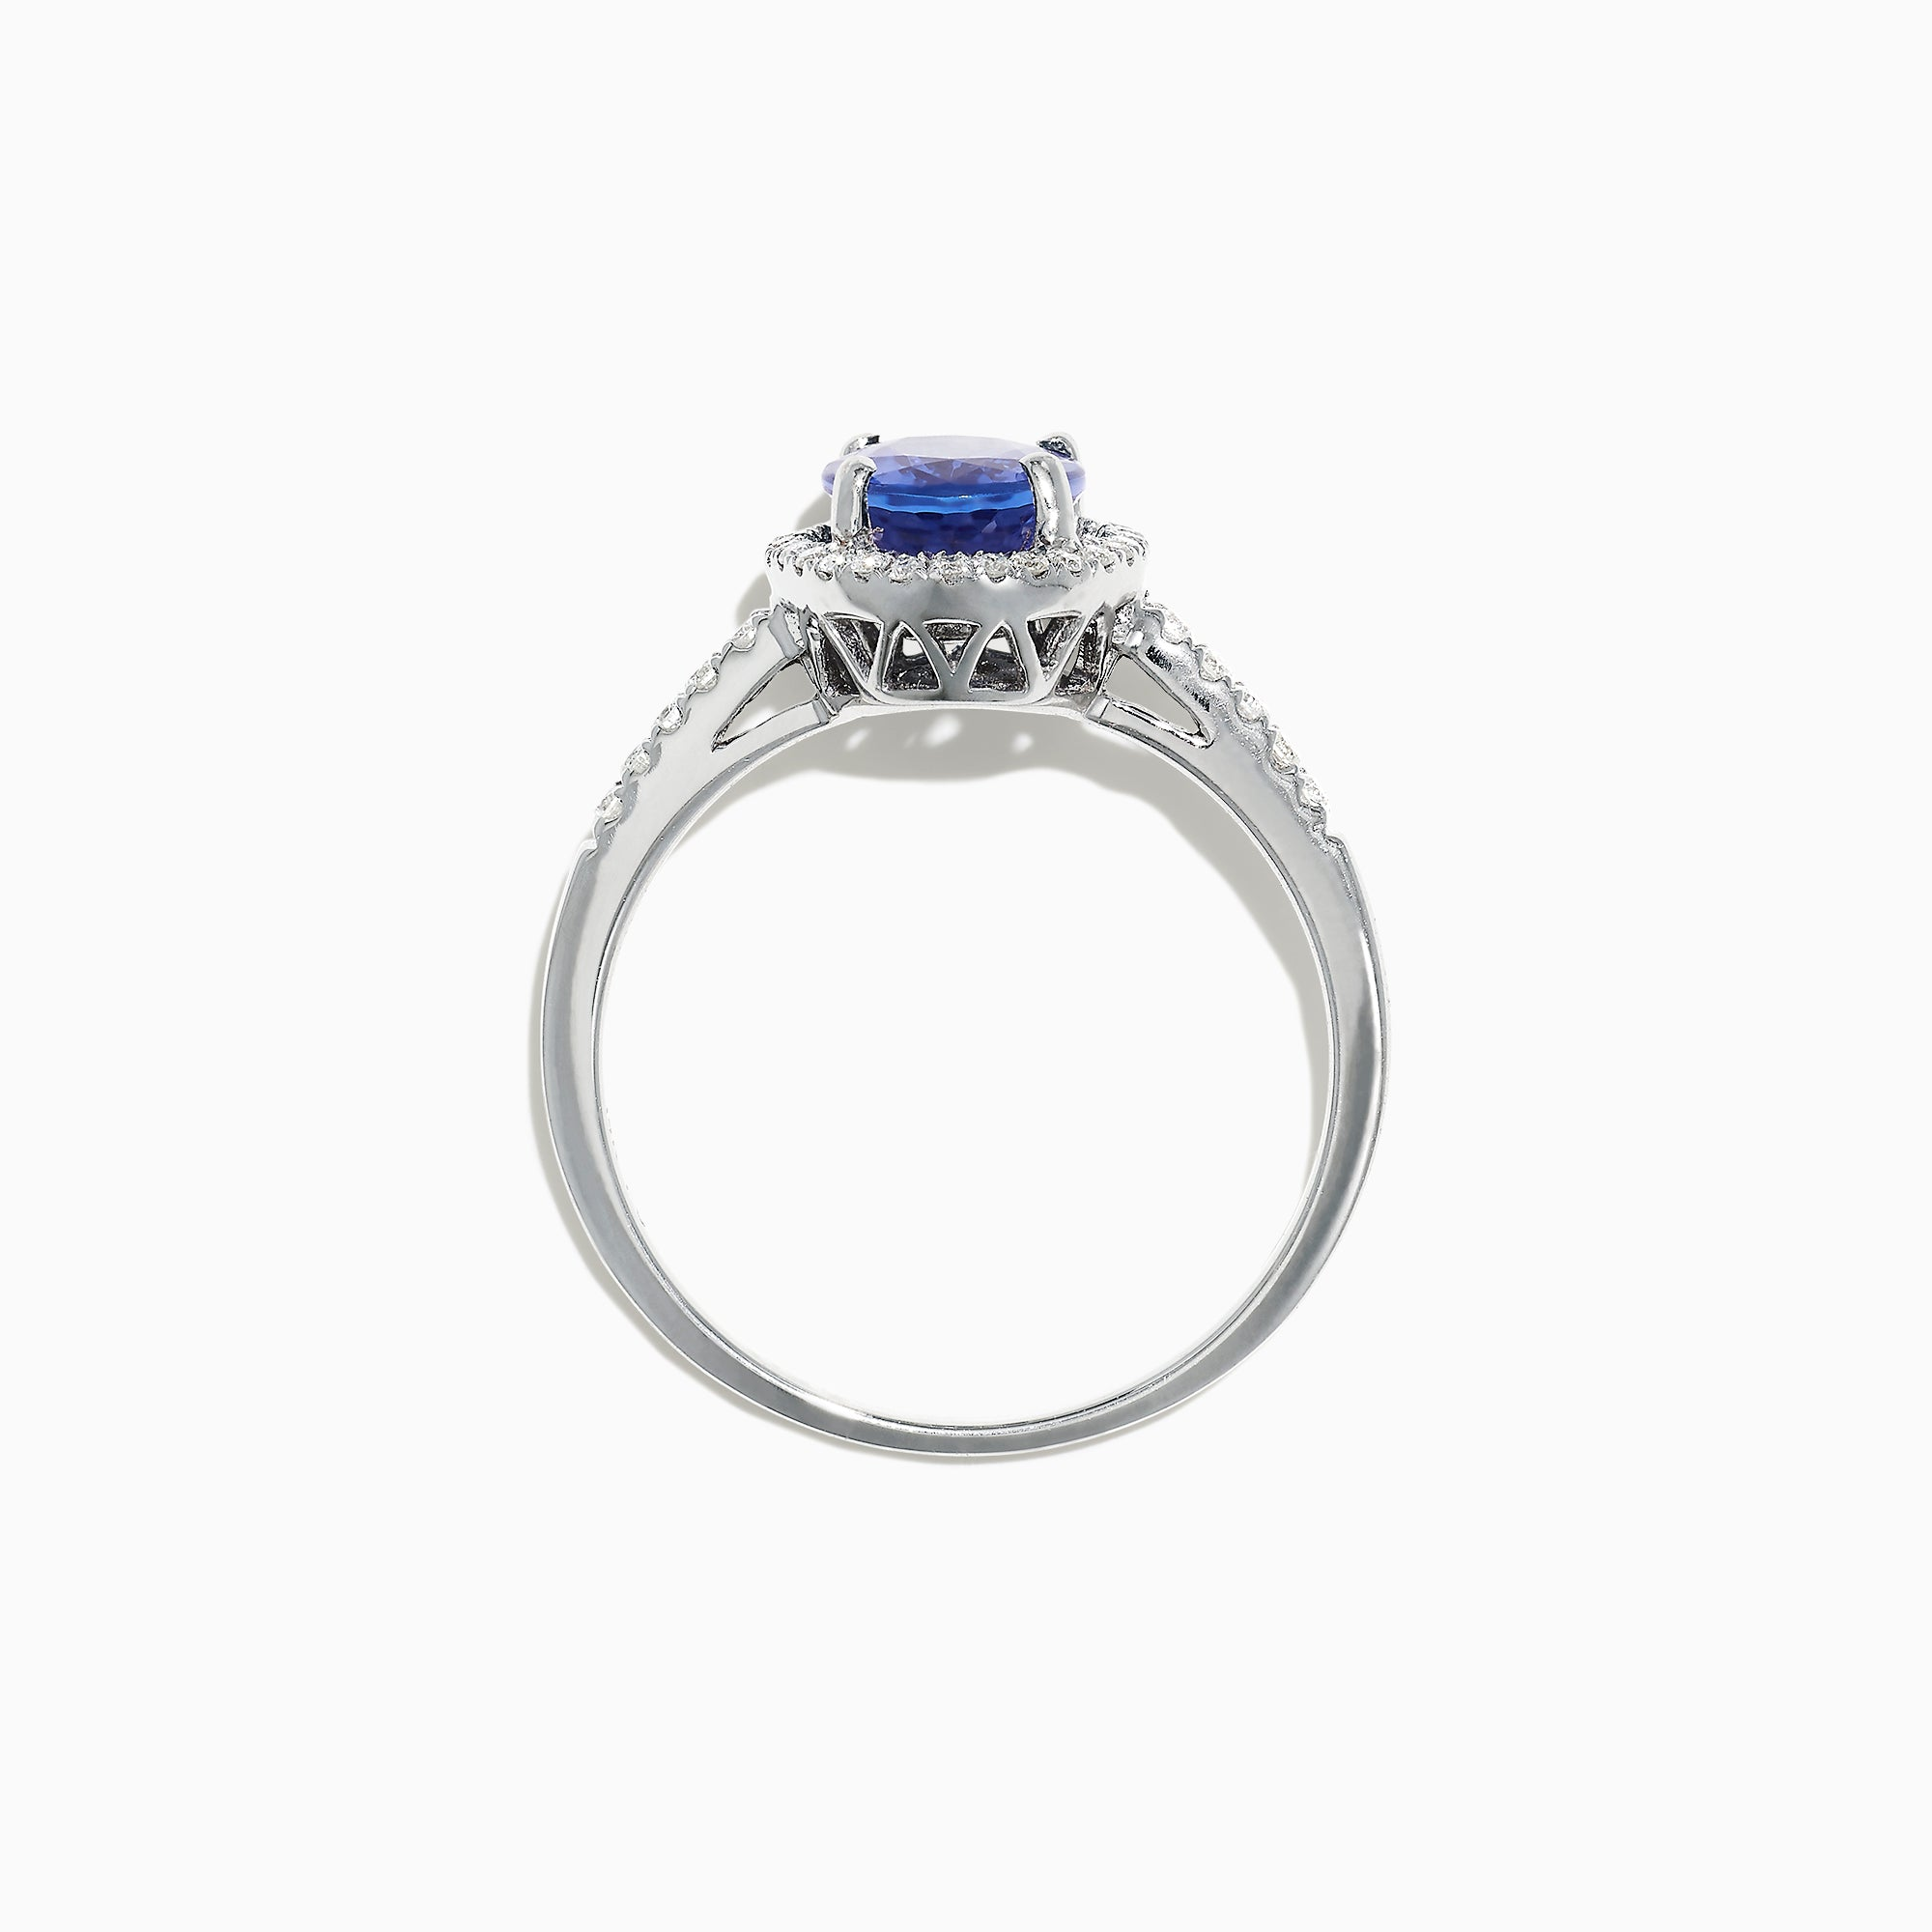 Effy 14K White Gold Tanzanite and Diamond Ring, 2.24 TCW